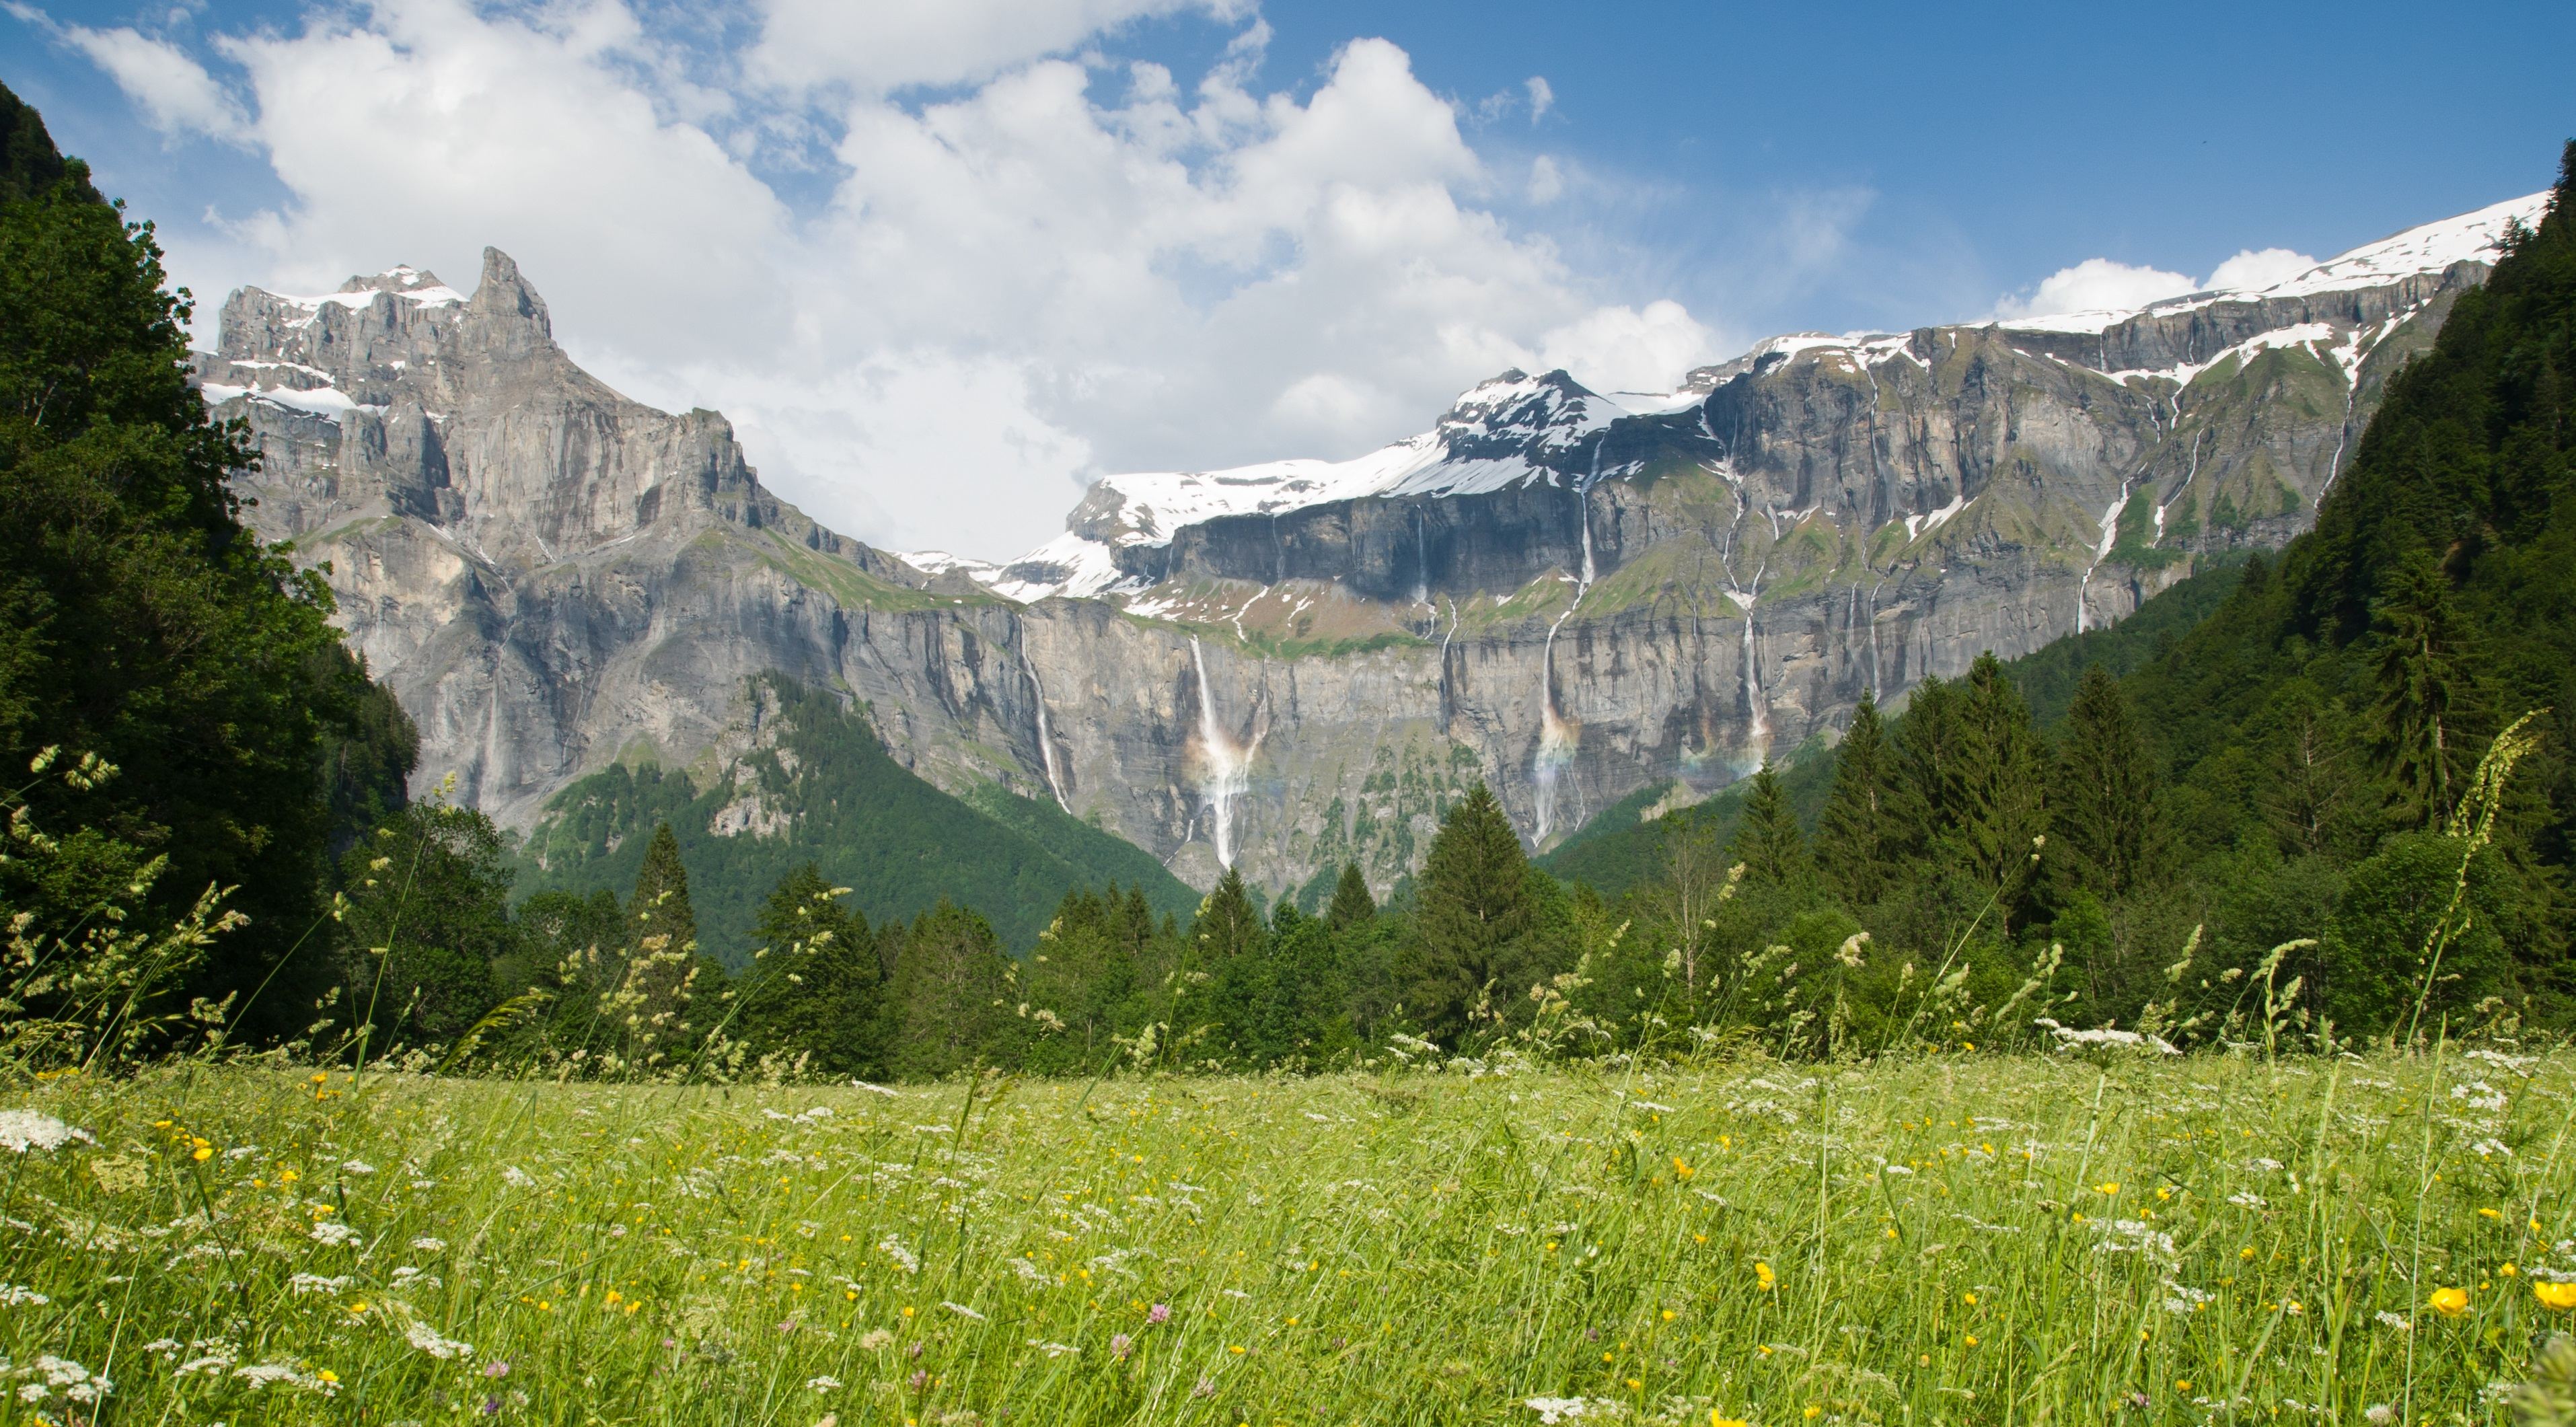 Fer cheval cirque in sixt fer cheval french alps savoie mont blanc - Office de tourisme sixt fer a cheval ...